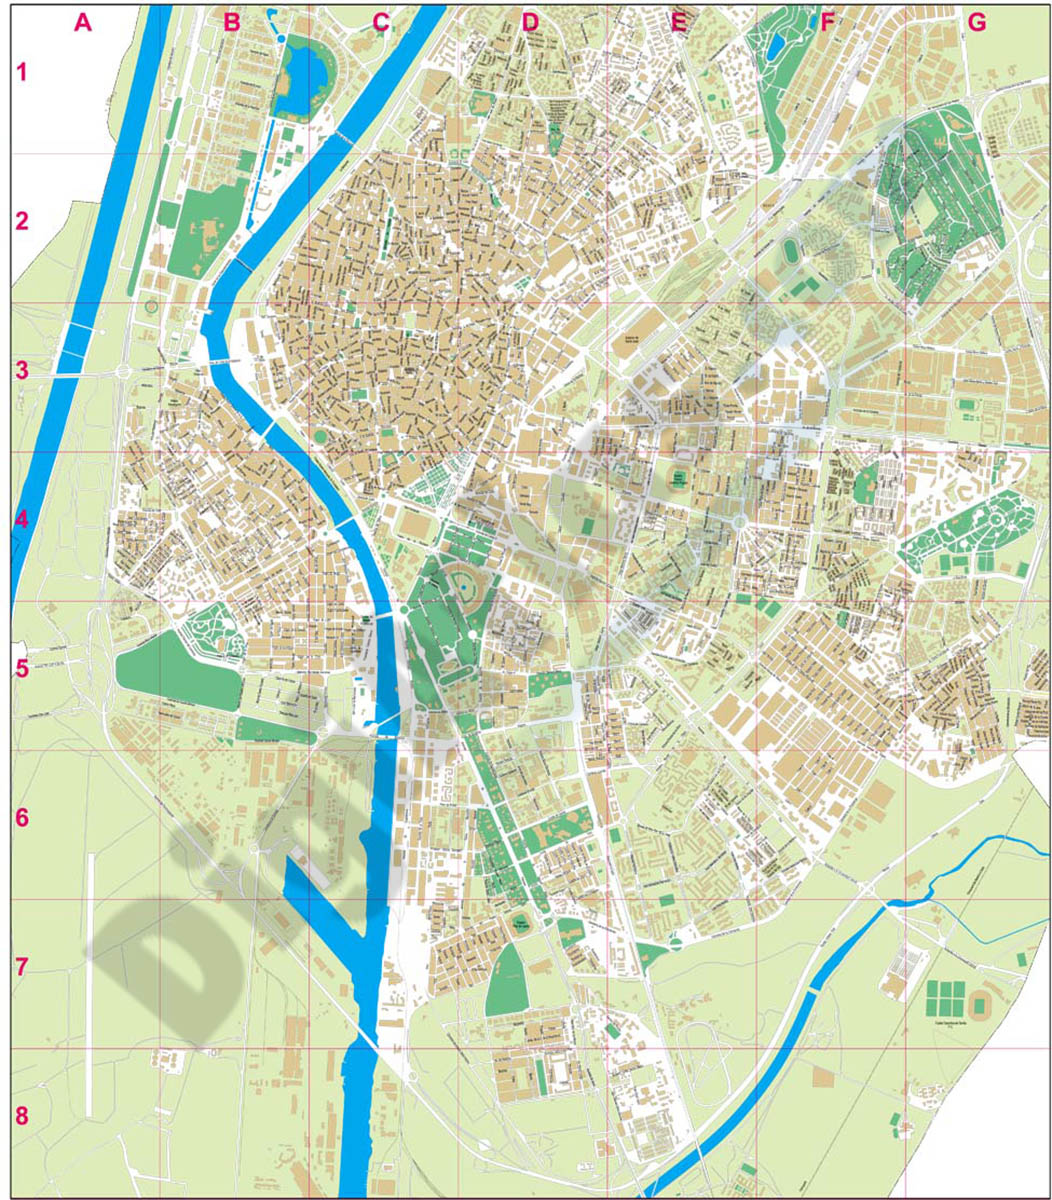 Sevilla - city map